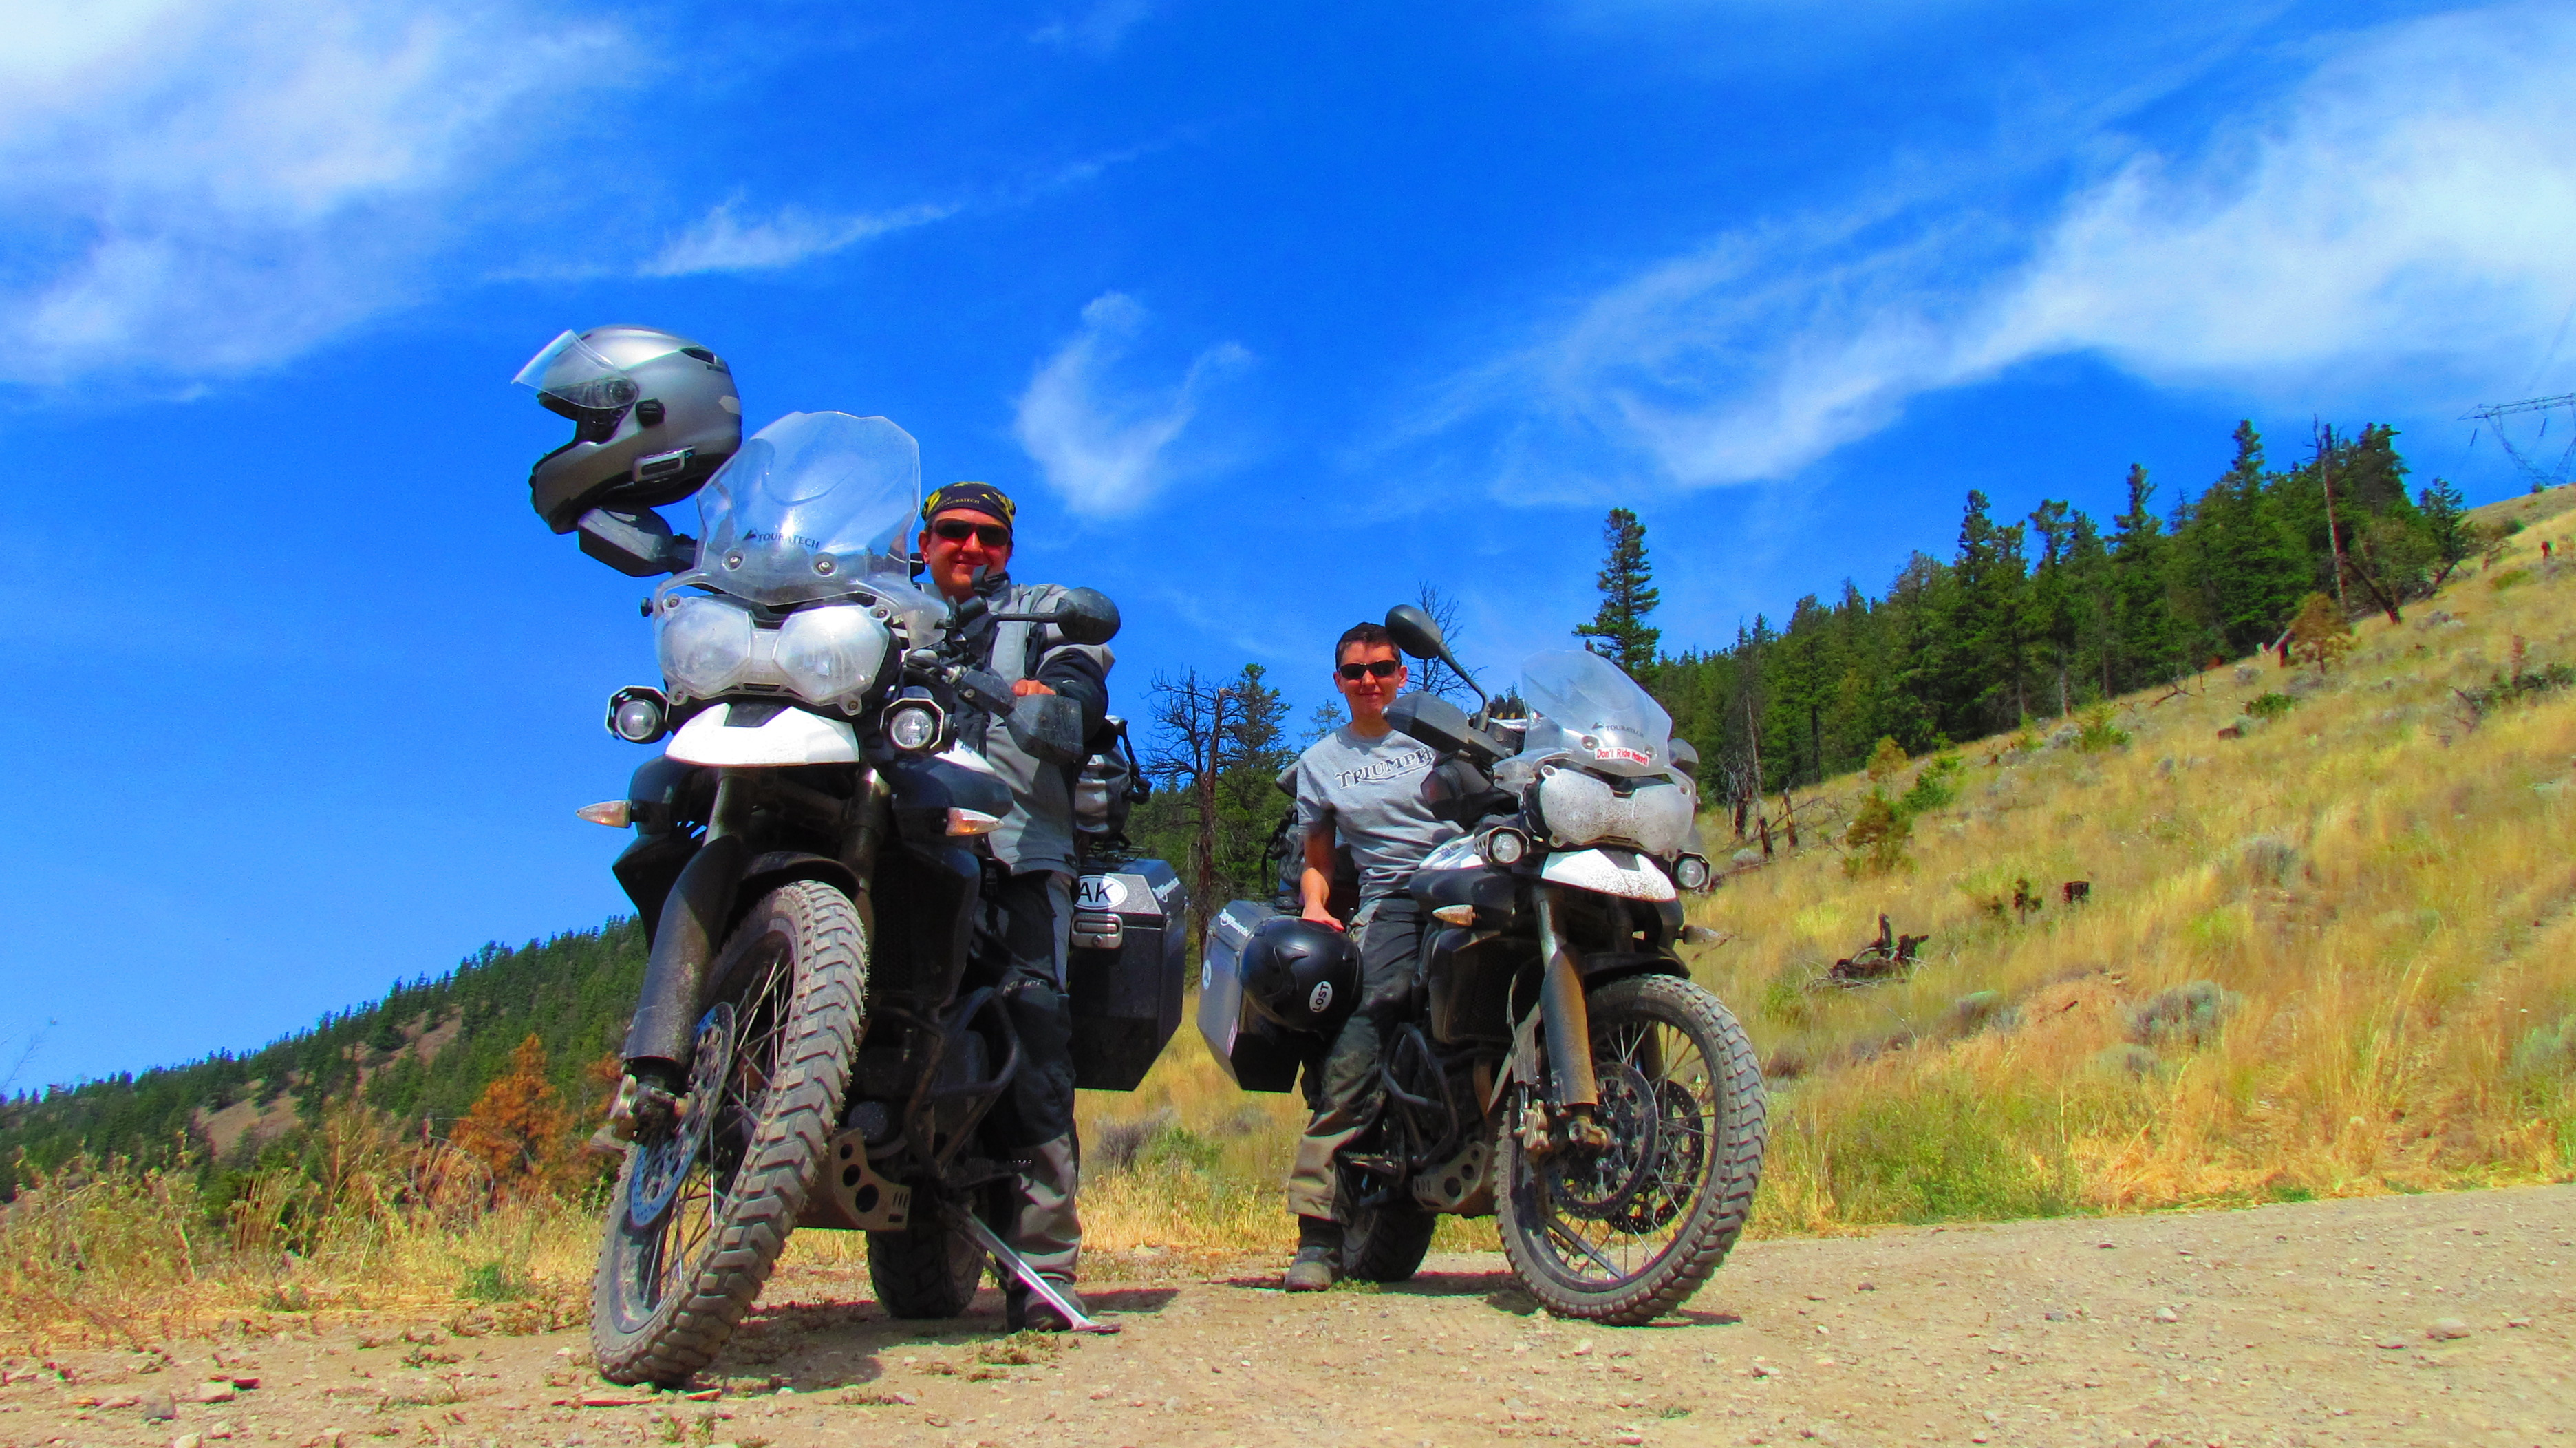 triumph tiger 800xc review | advgrrl motorcycle adventures & more